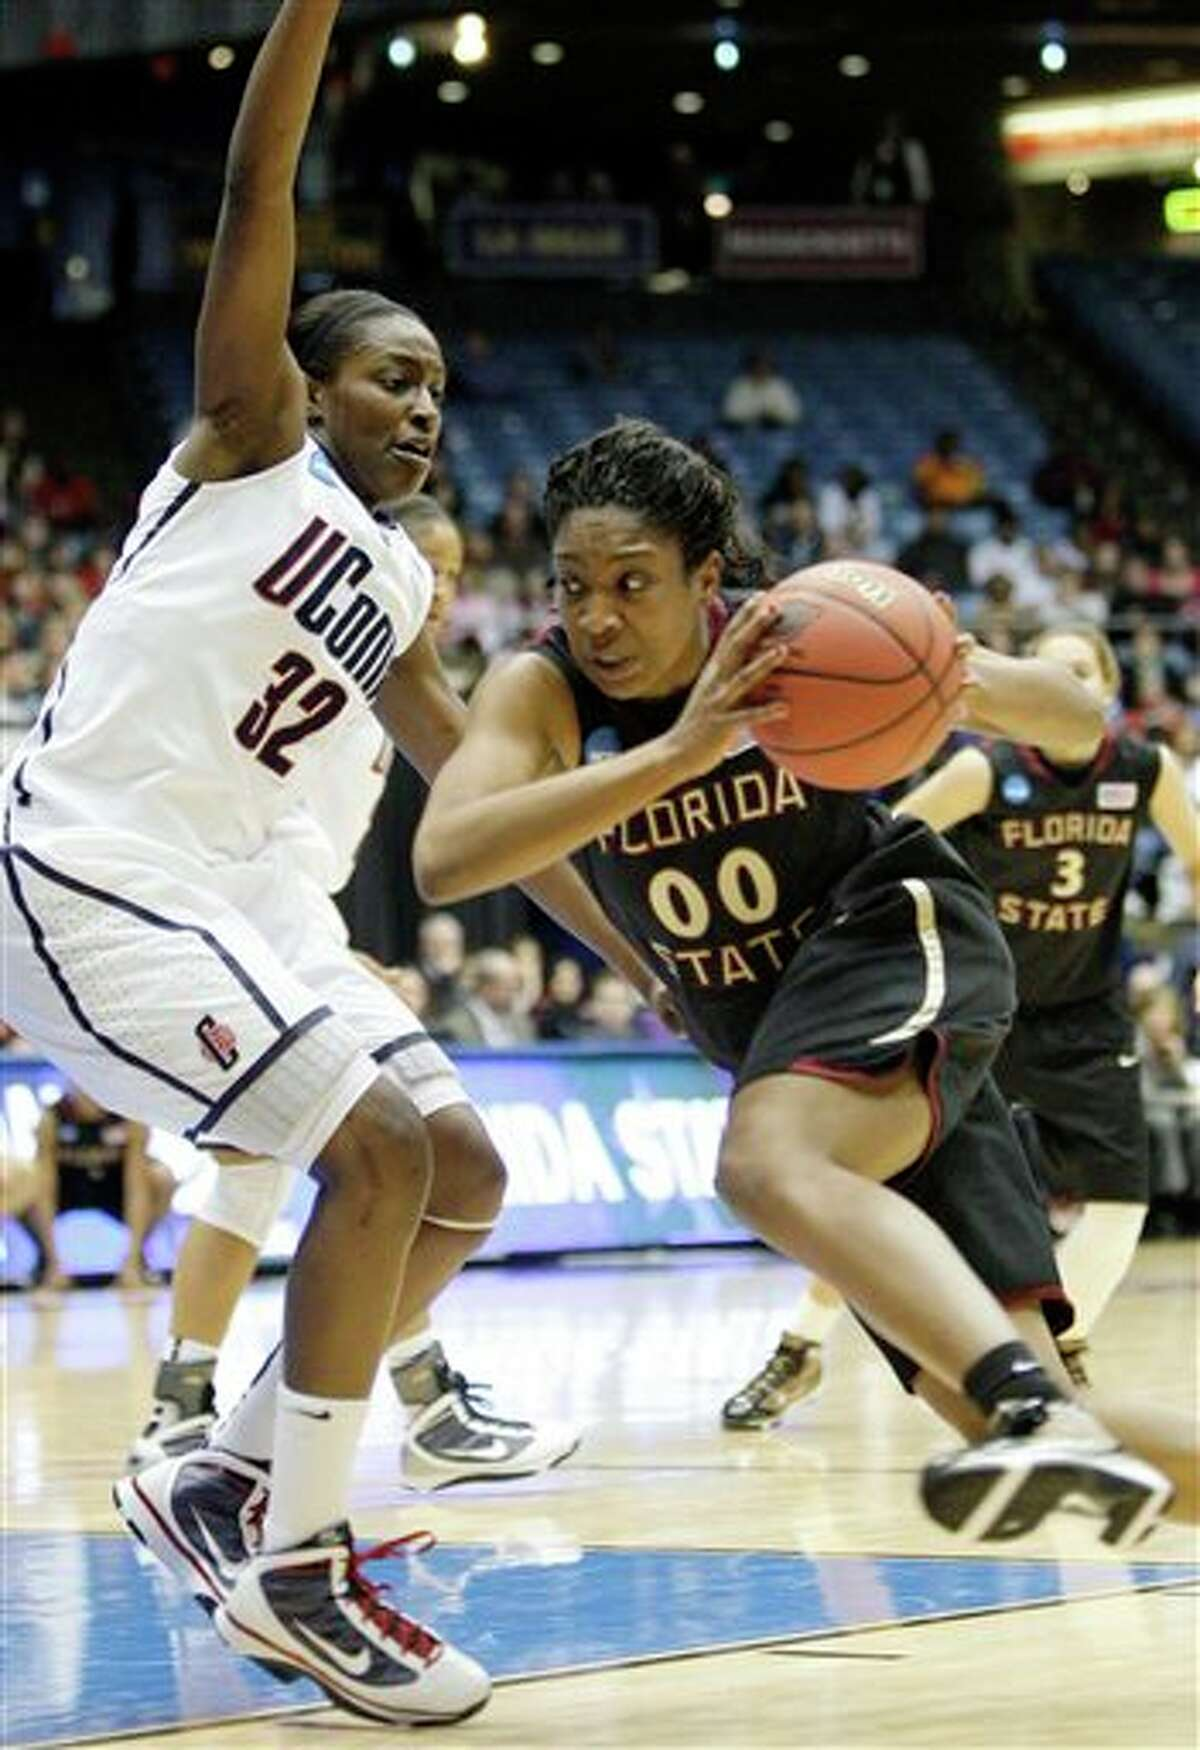 Florida State's Chasity Clayton (00) drives on Kalana Greene (32) in the first half of the NCAA Dayton Regional final college basketball game Tuesday, March 30, 2010, in Dayton, Ohio. (AP Photo/Al Behrman)